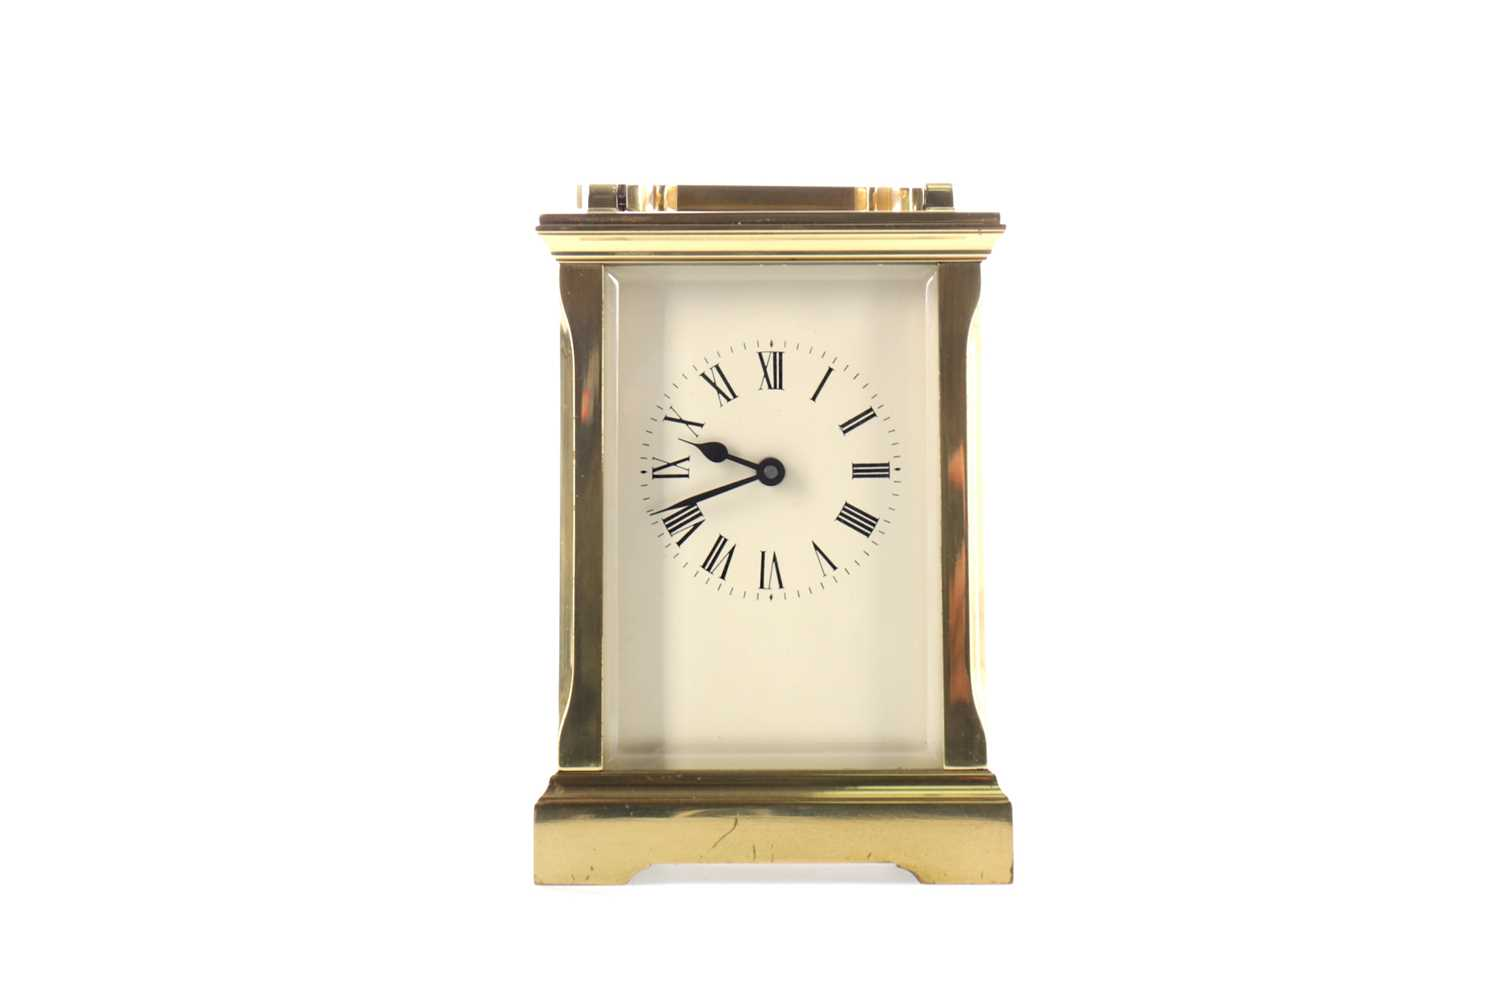 Lot 1740 - AN EARLY 20TH CENTURY CARRIAGE CLOCK